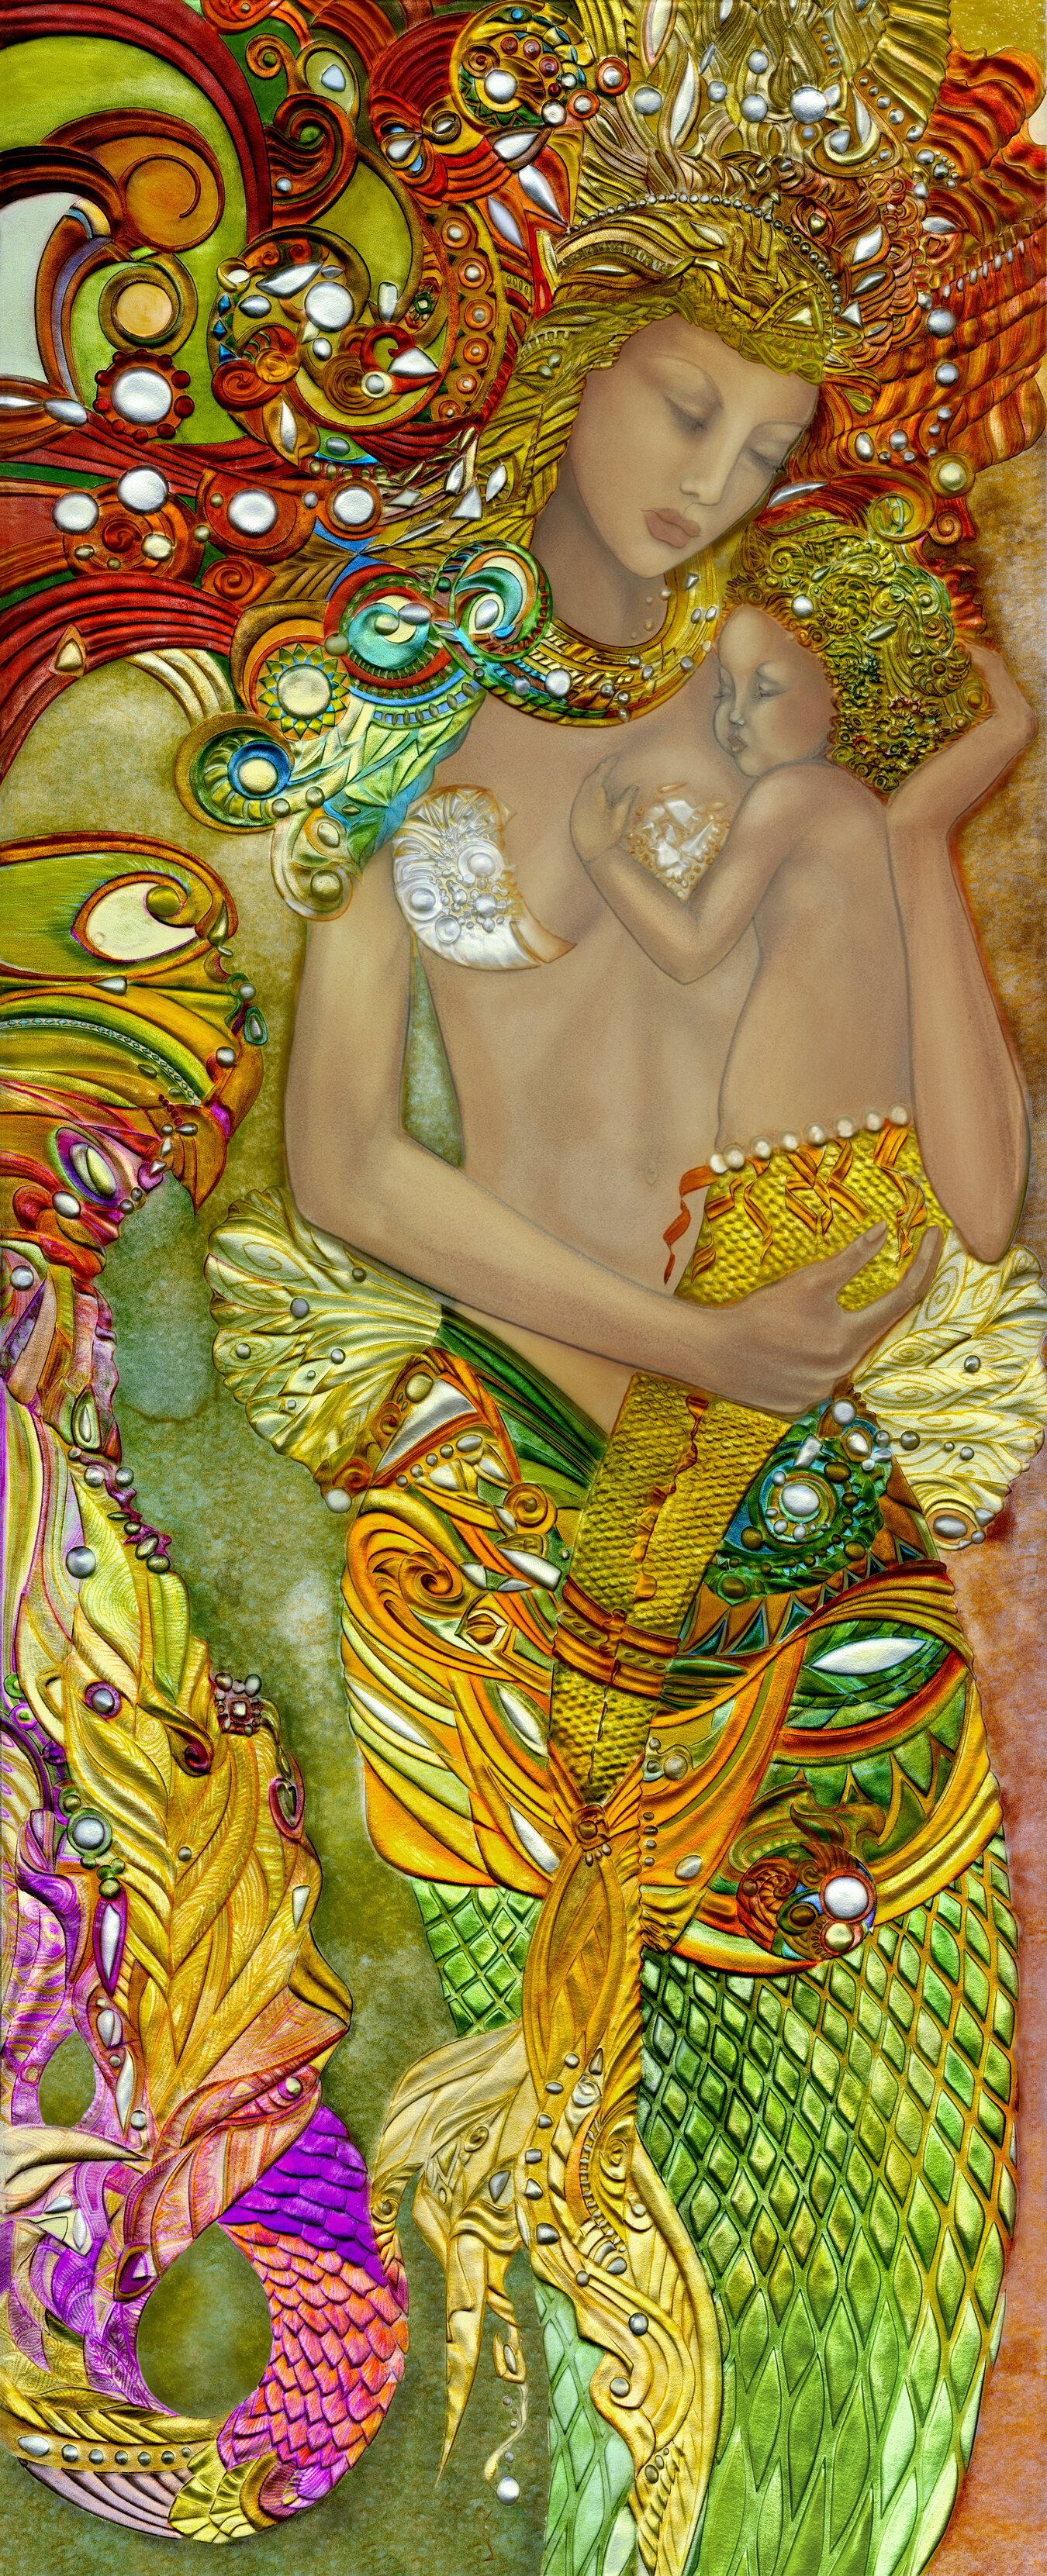 """cape verde - Size: 27"""" x 66""""Materials: 3/4"""" Thick Deep Carved Glass, Mixed MediaWeight (unframed): 75lbsAbout the Piece: A tender moment between a Mermaid mother and her child. The deep carving of the glass, combined with the color creates a three dimensional effect; moving, shifting, and changing with the evolution of a room's natural illumination, when experienced in person."""